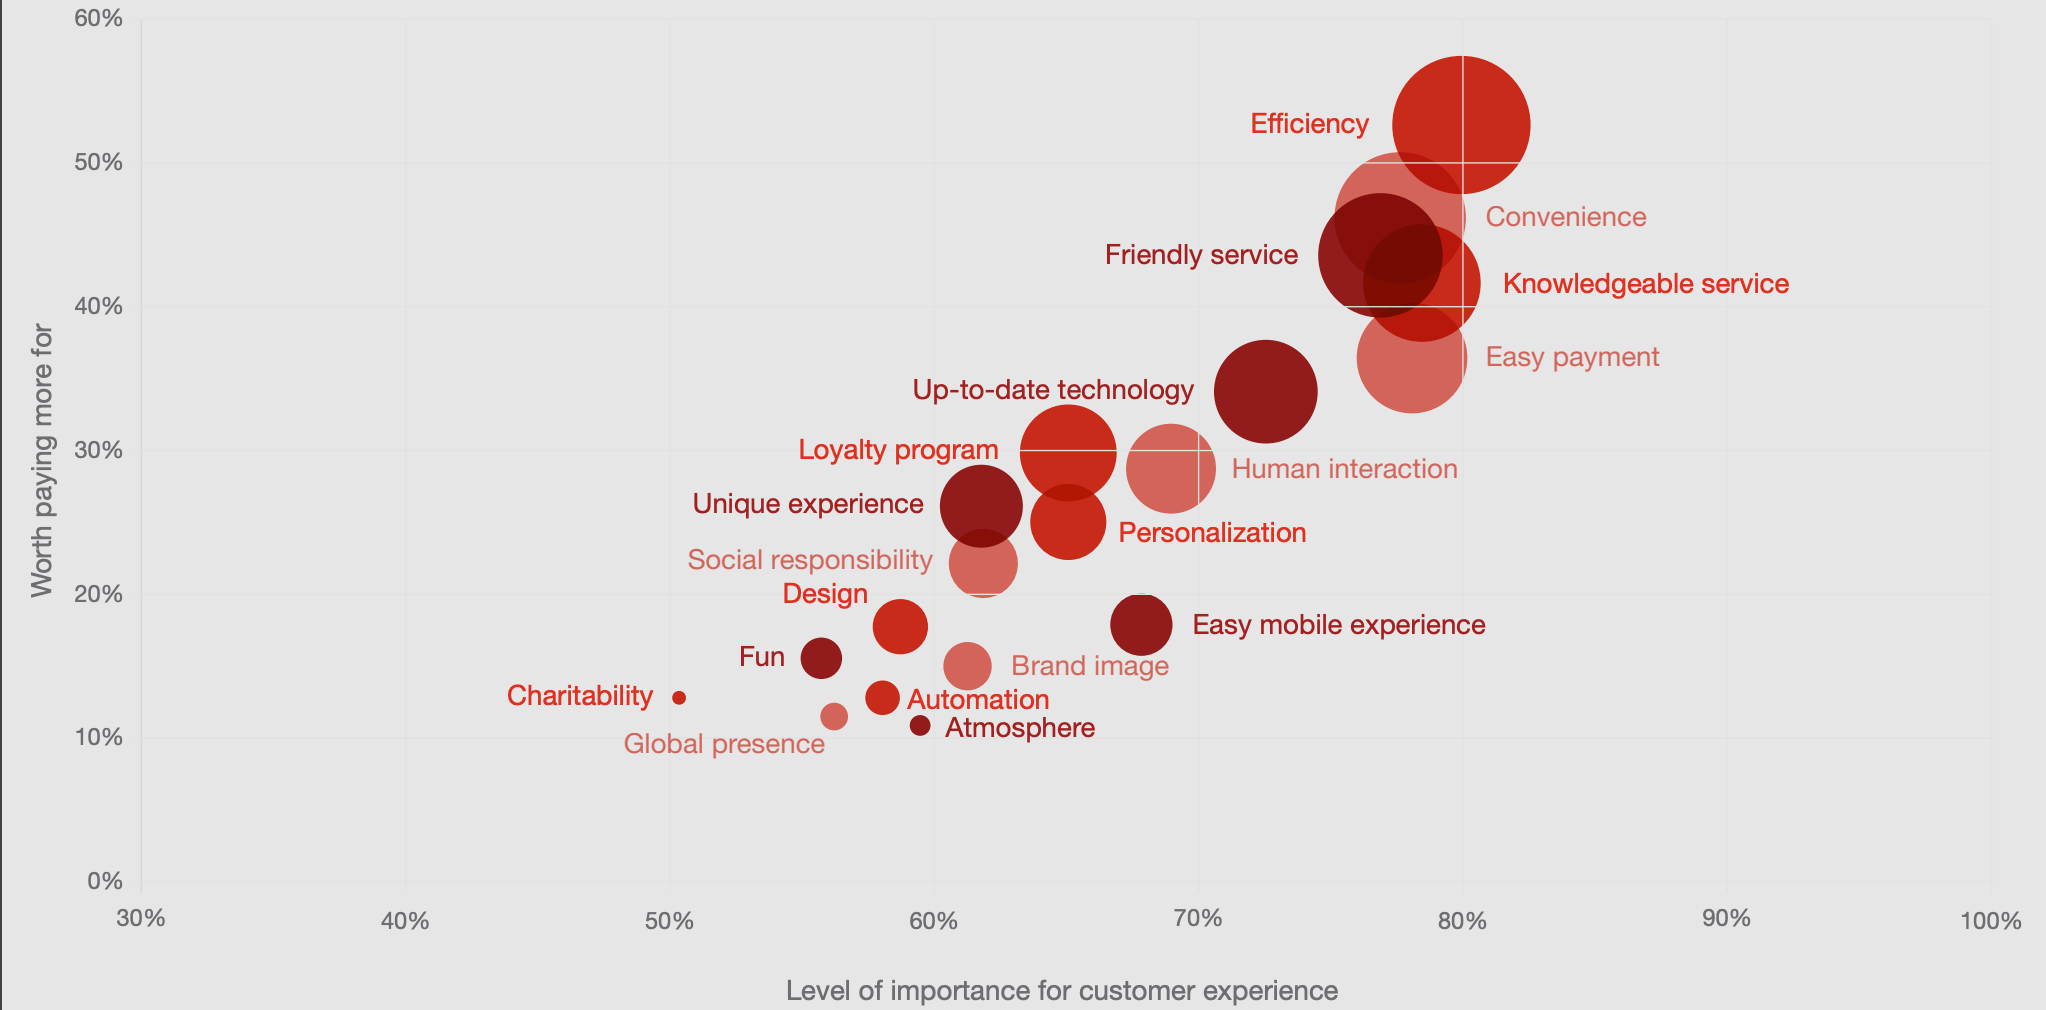 Consumers pay more for positive customer experiences. (PwC)